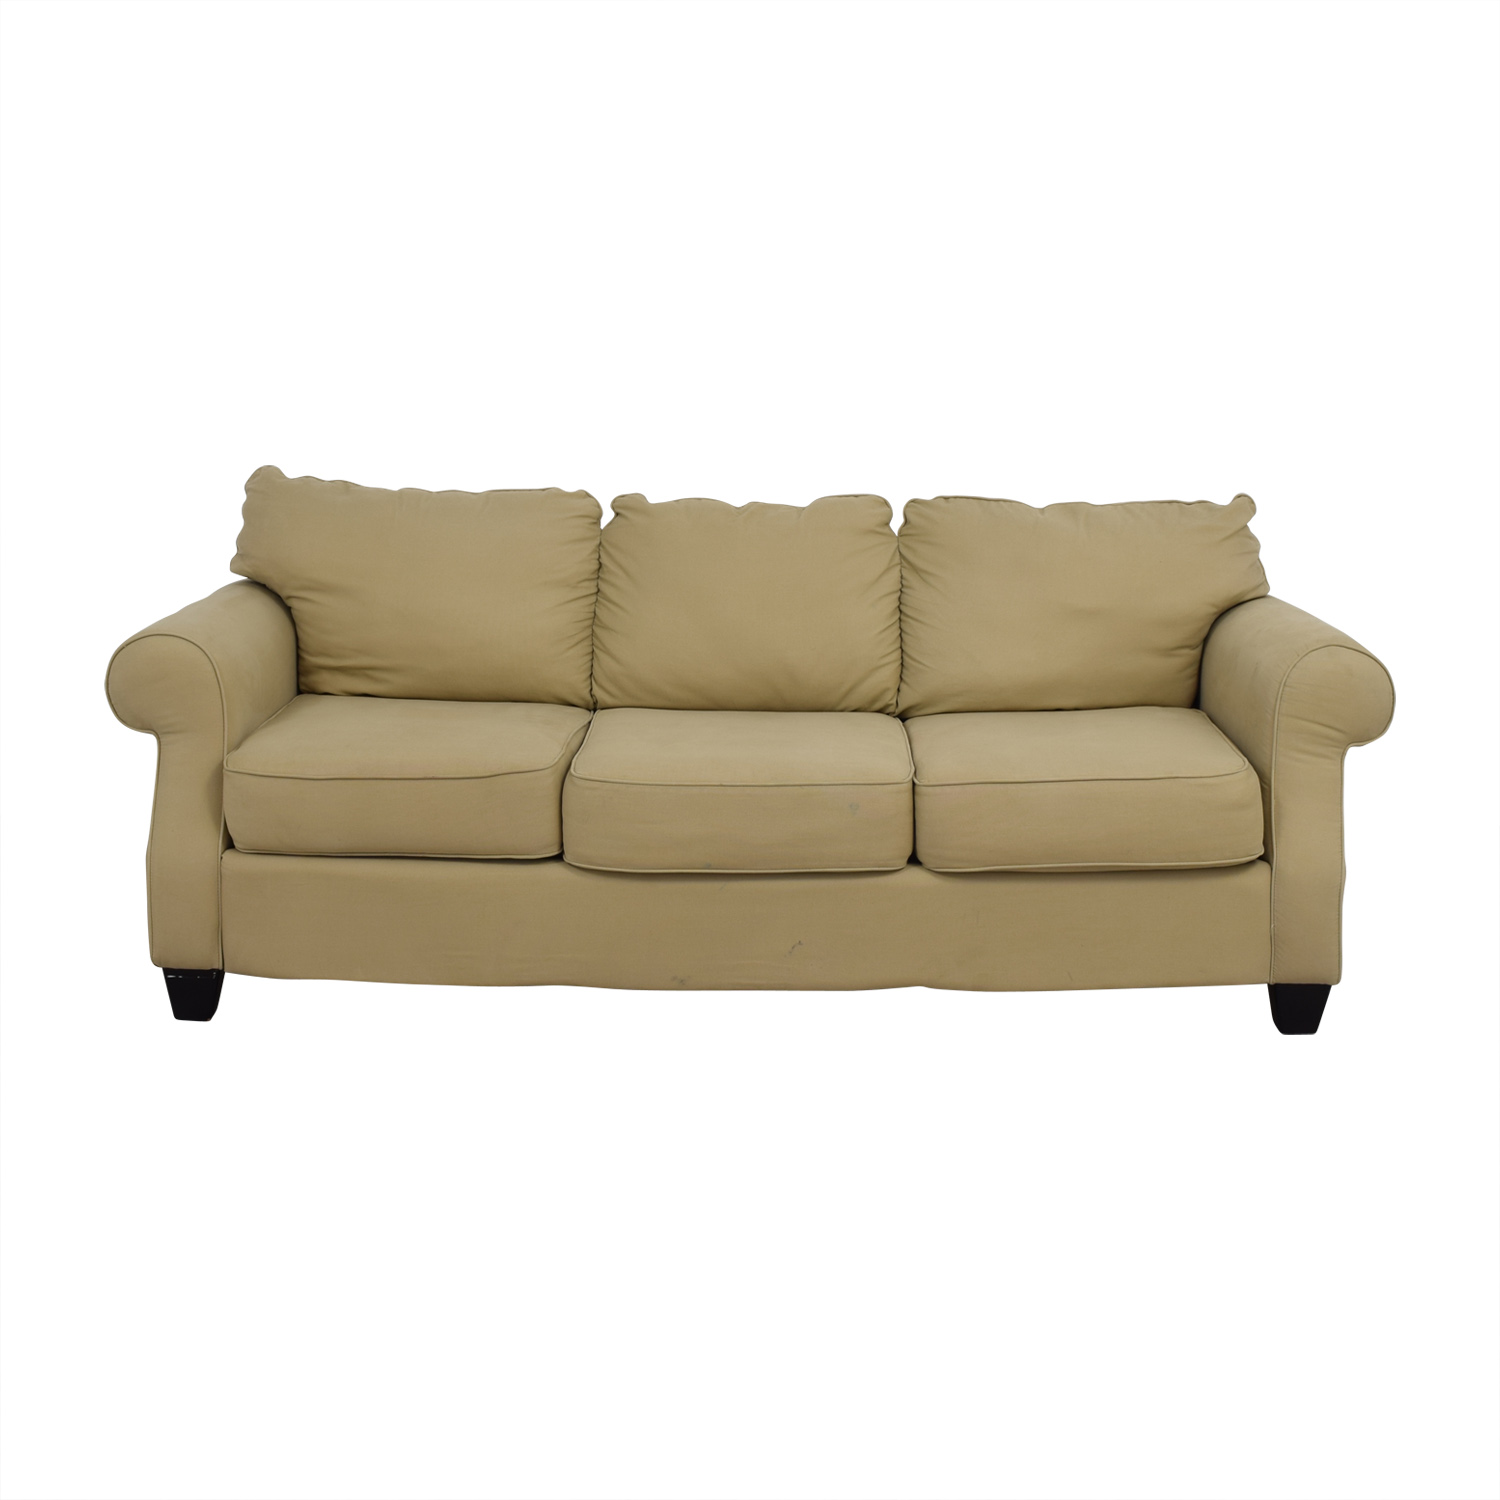 Beige Three-Cushion Curved Arm Sofa on sale